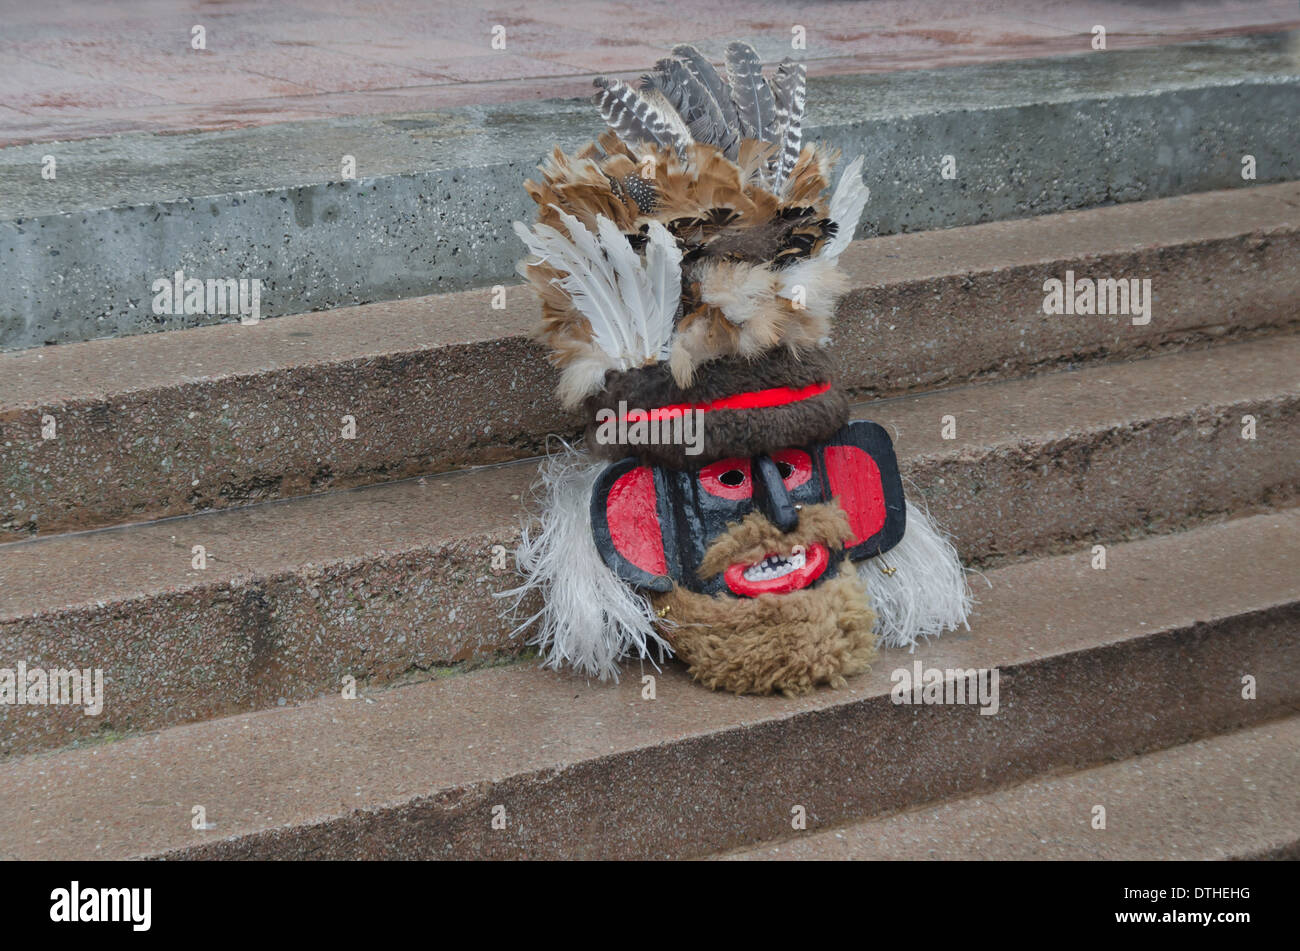 Colorful theatrical mask of mummer sitting on the staircase - Stock Image